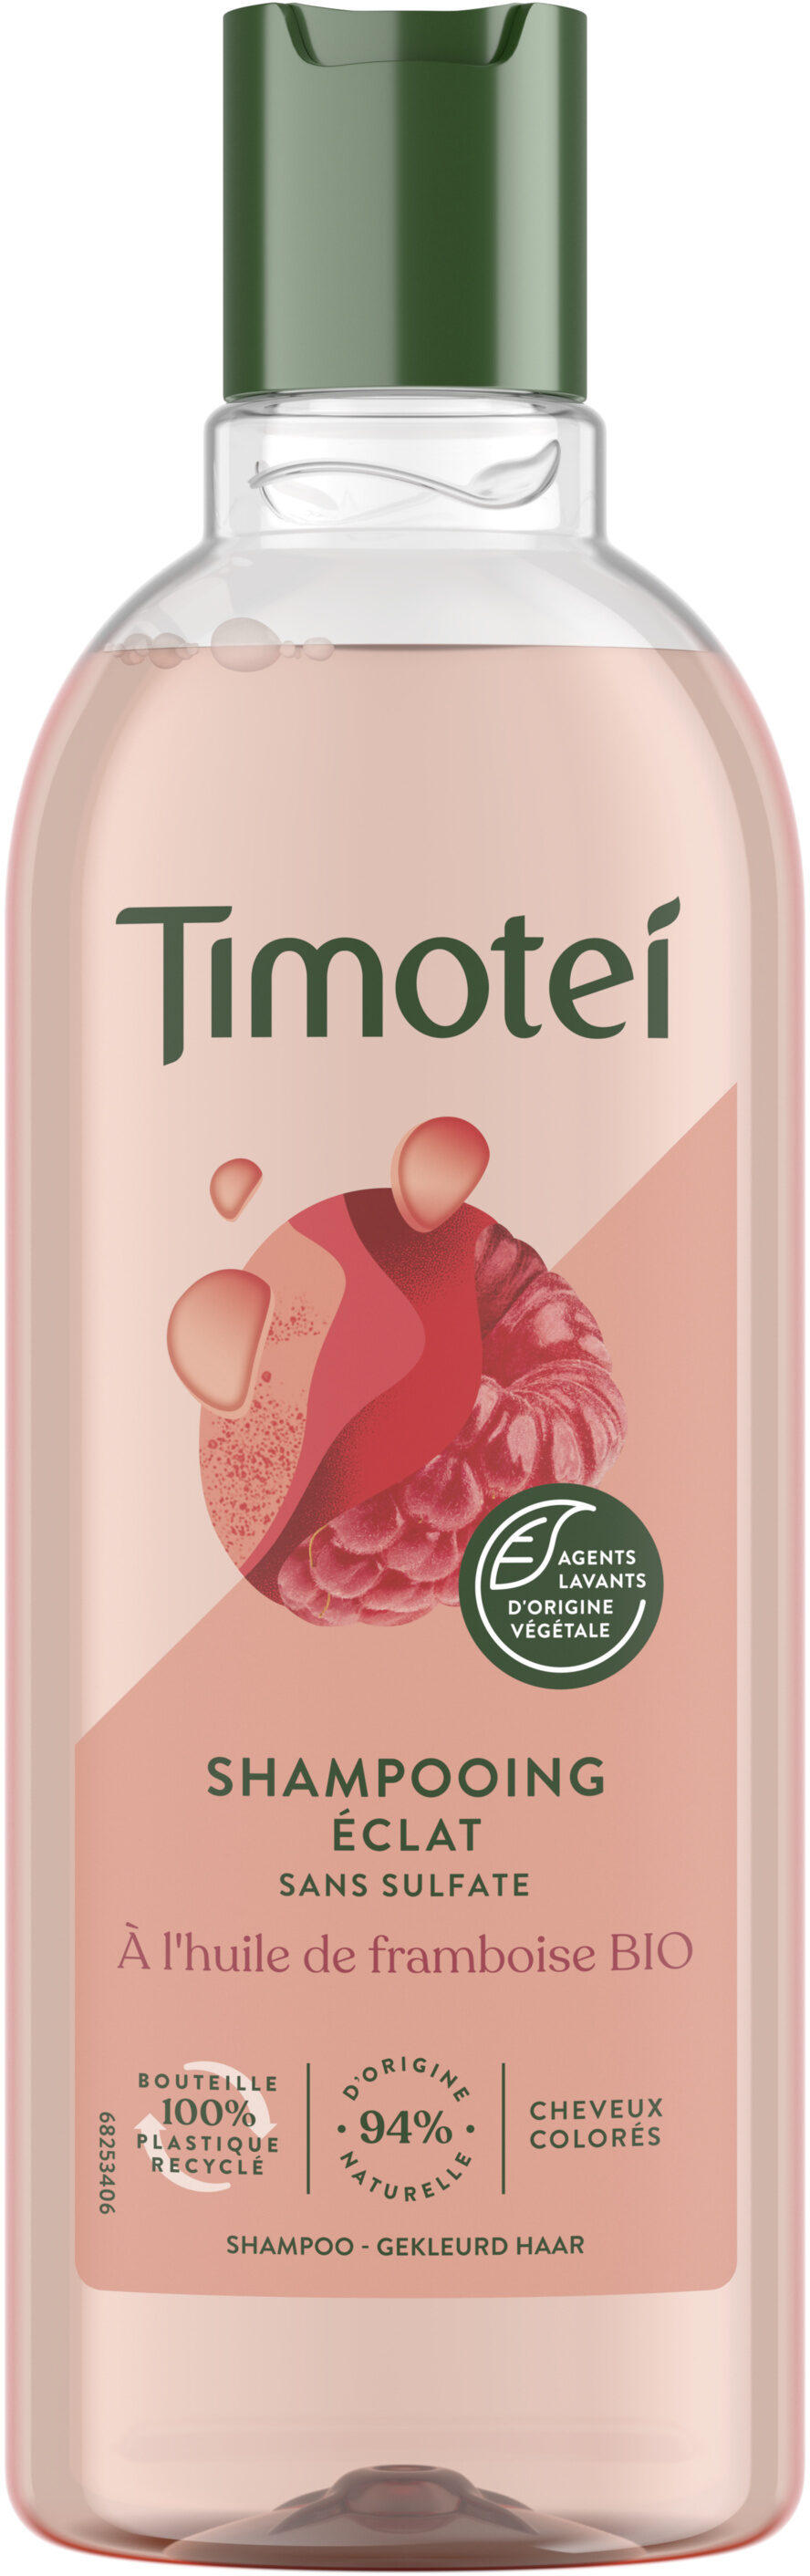 Timotei Shampooing Femme Éclat - Product - fr